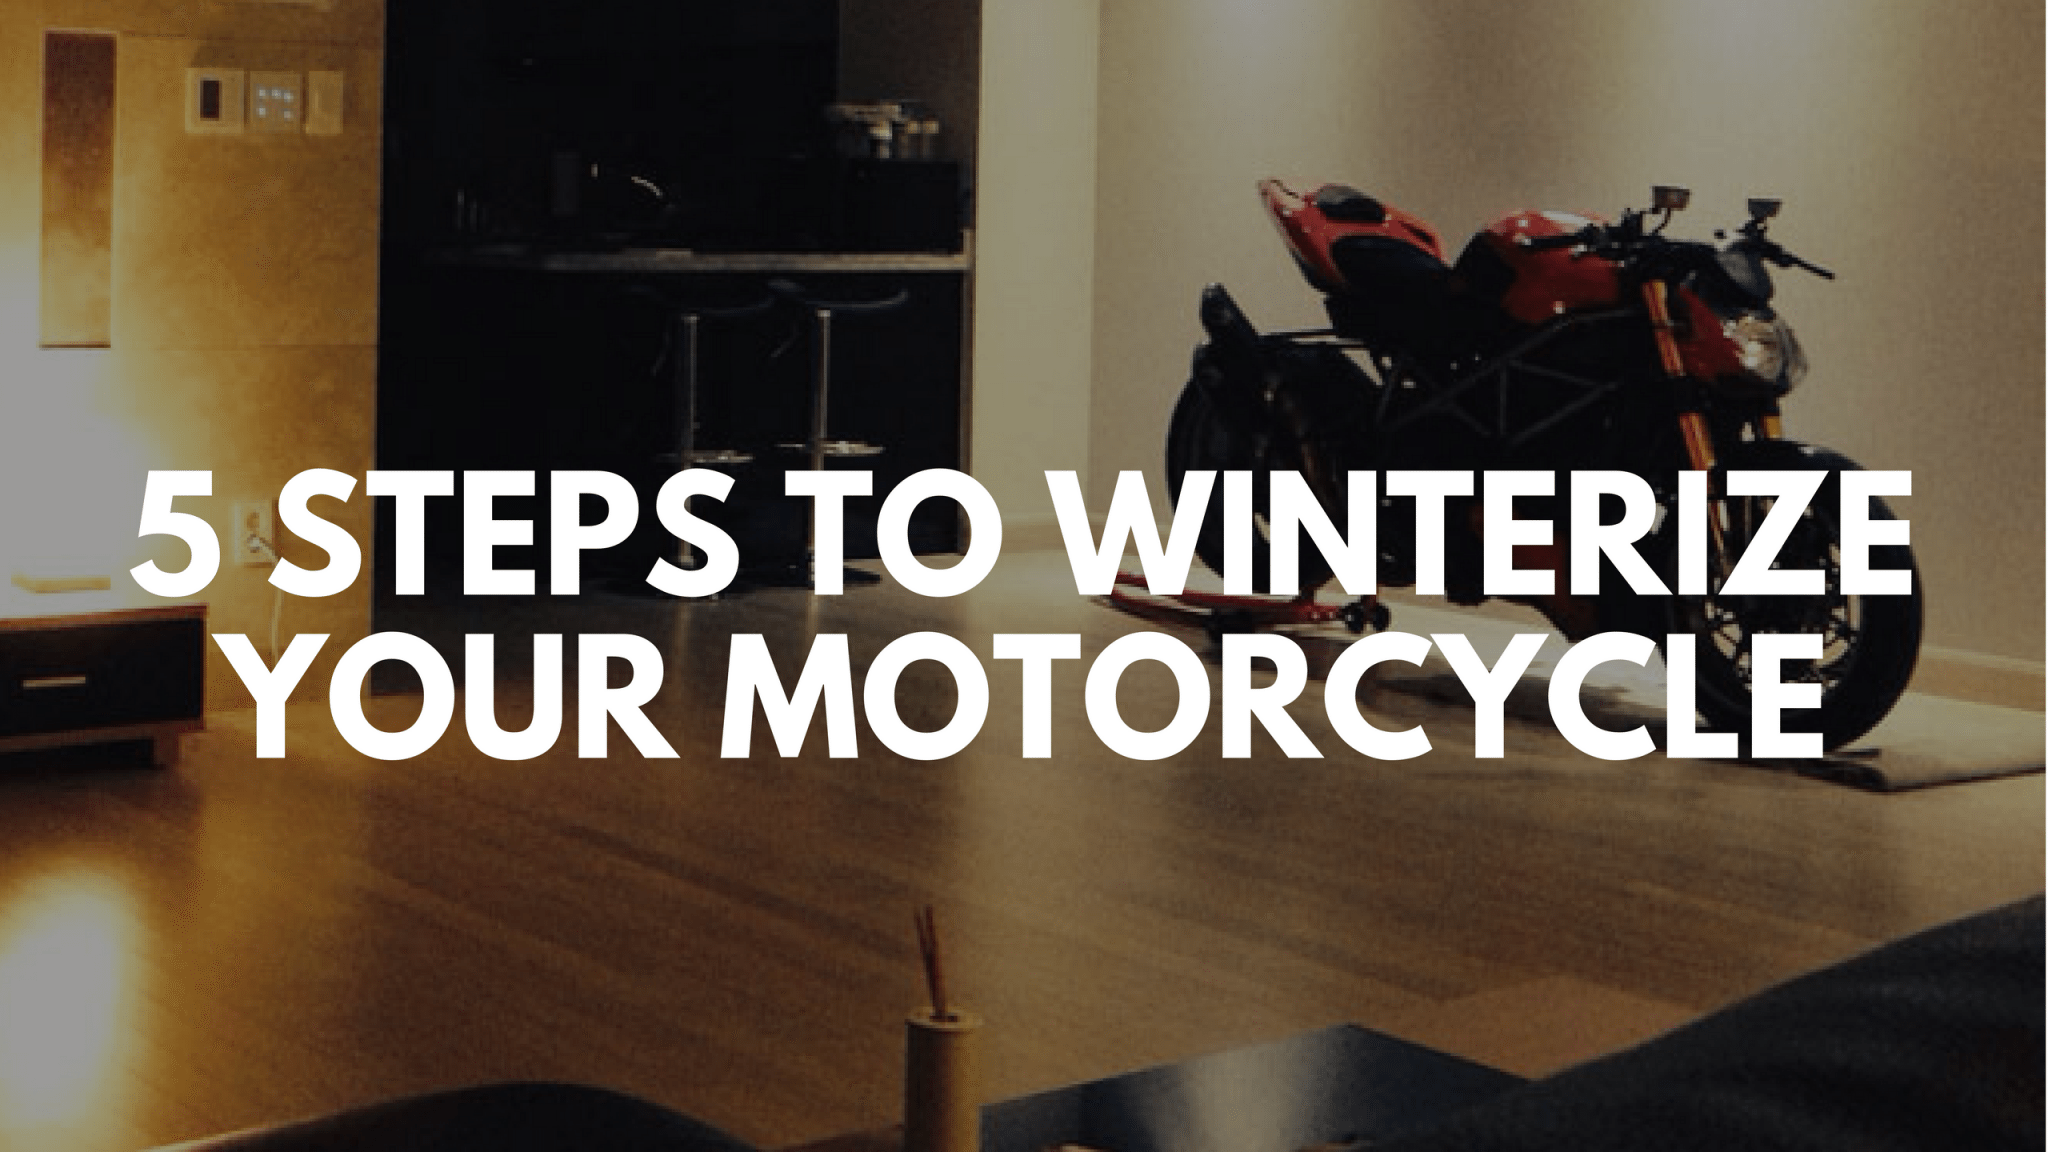 5 Steps to Winterize Your Motorcycle